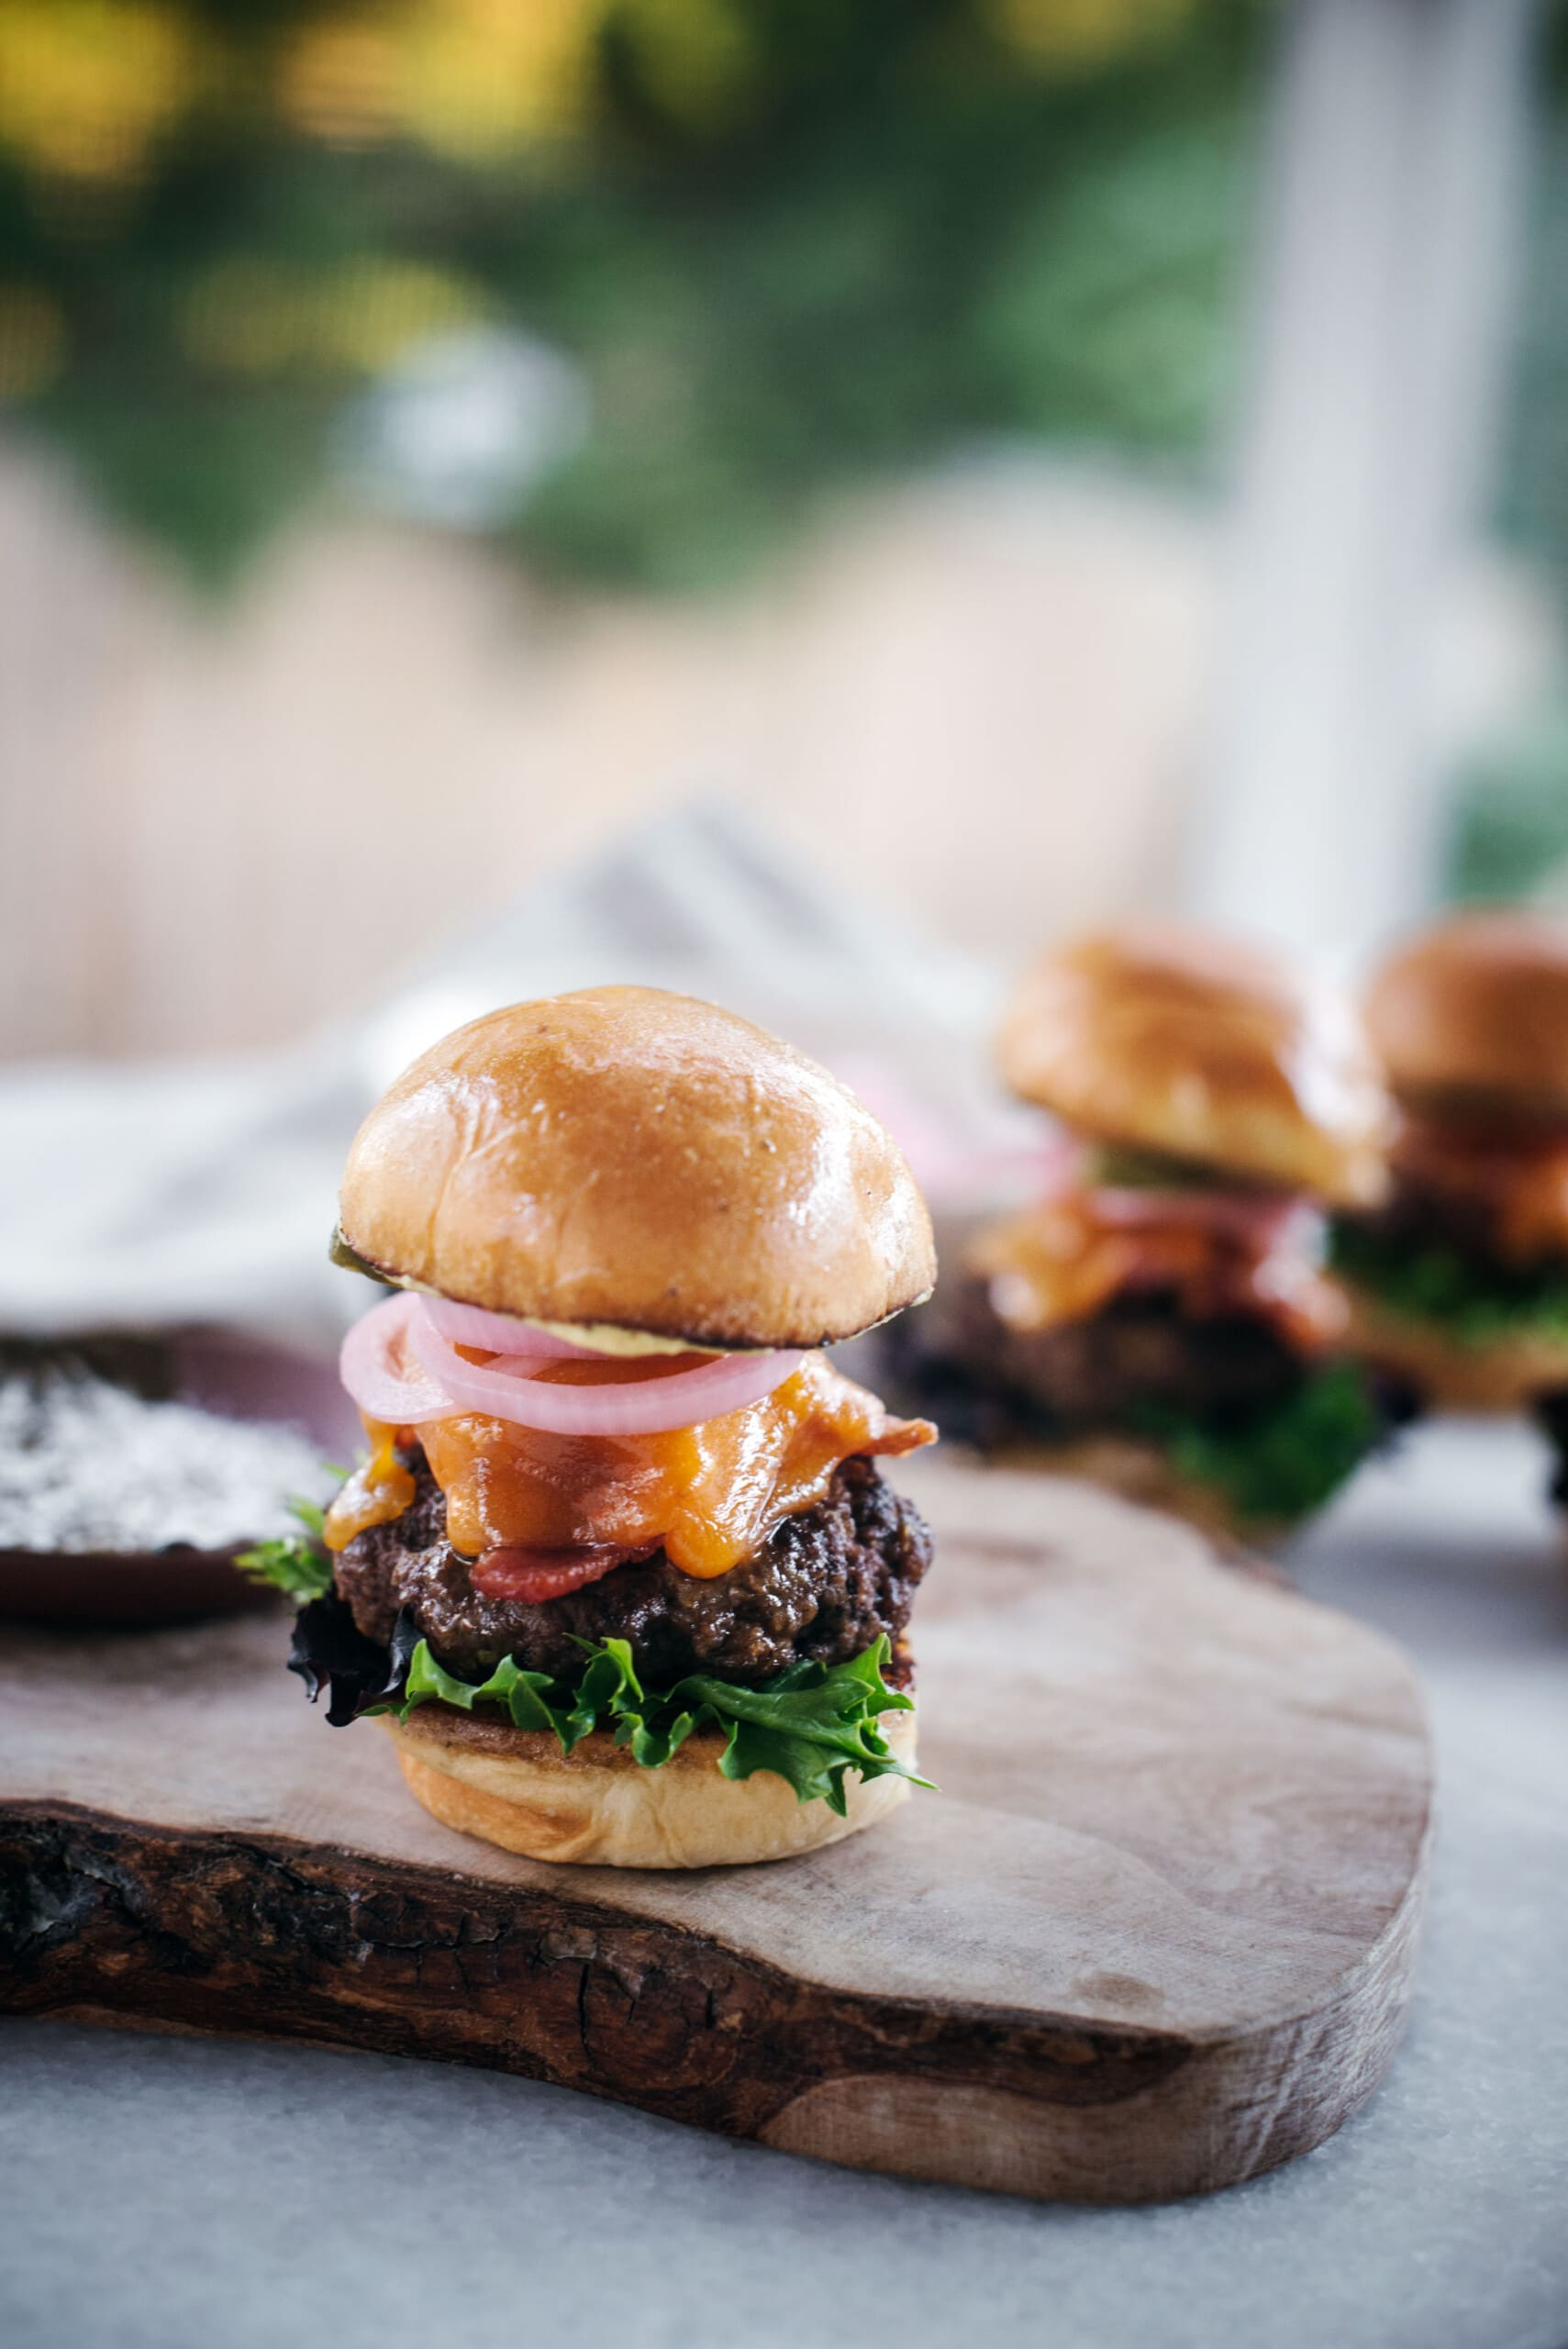 Easy to Make Tailgate Food Ideas: Mustard Burger Sliders